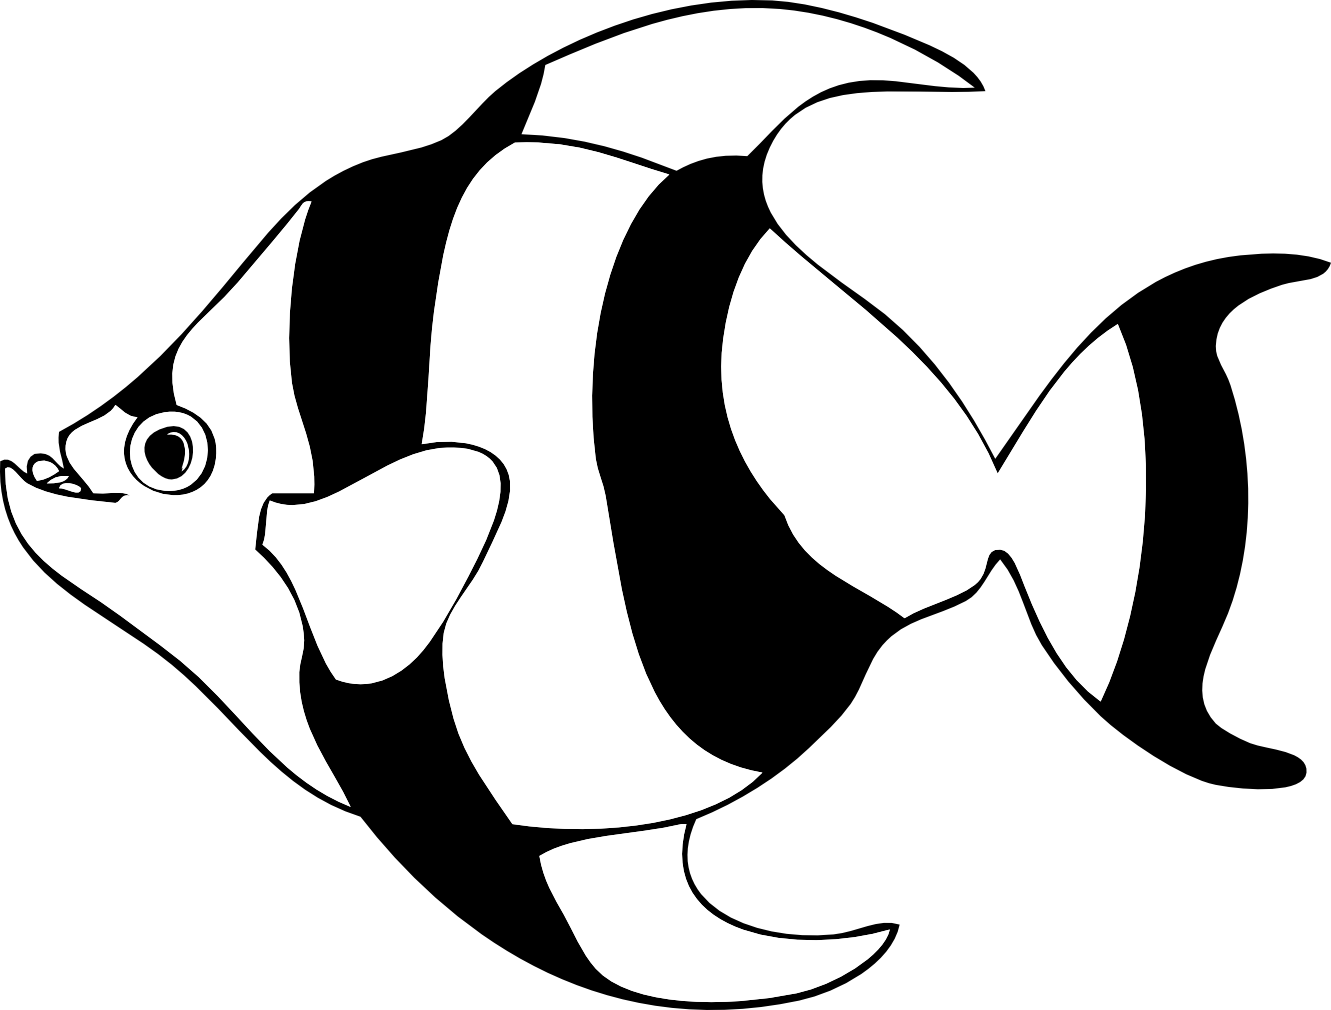 School free download best. Fish food clipart black and white